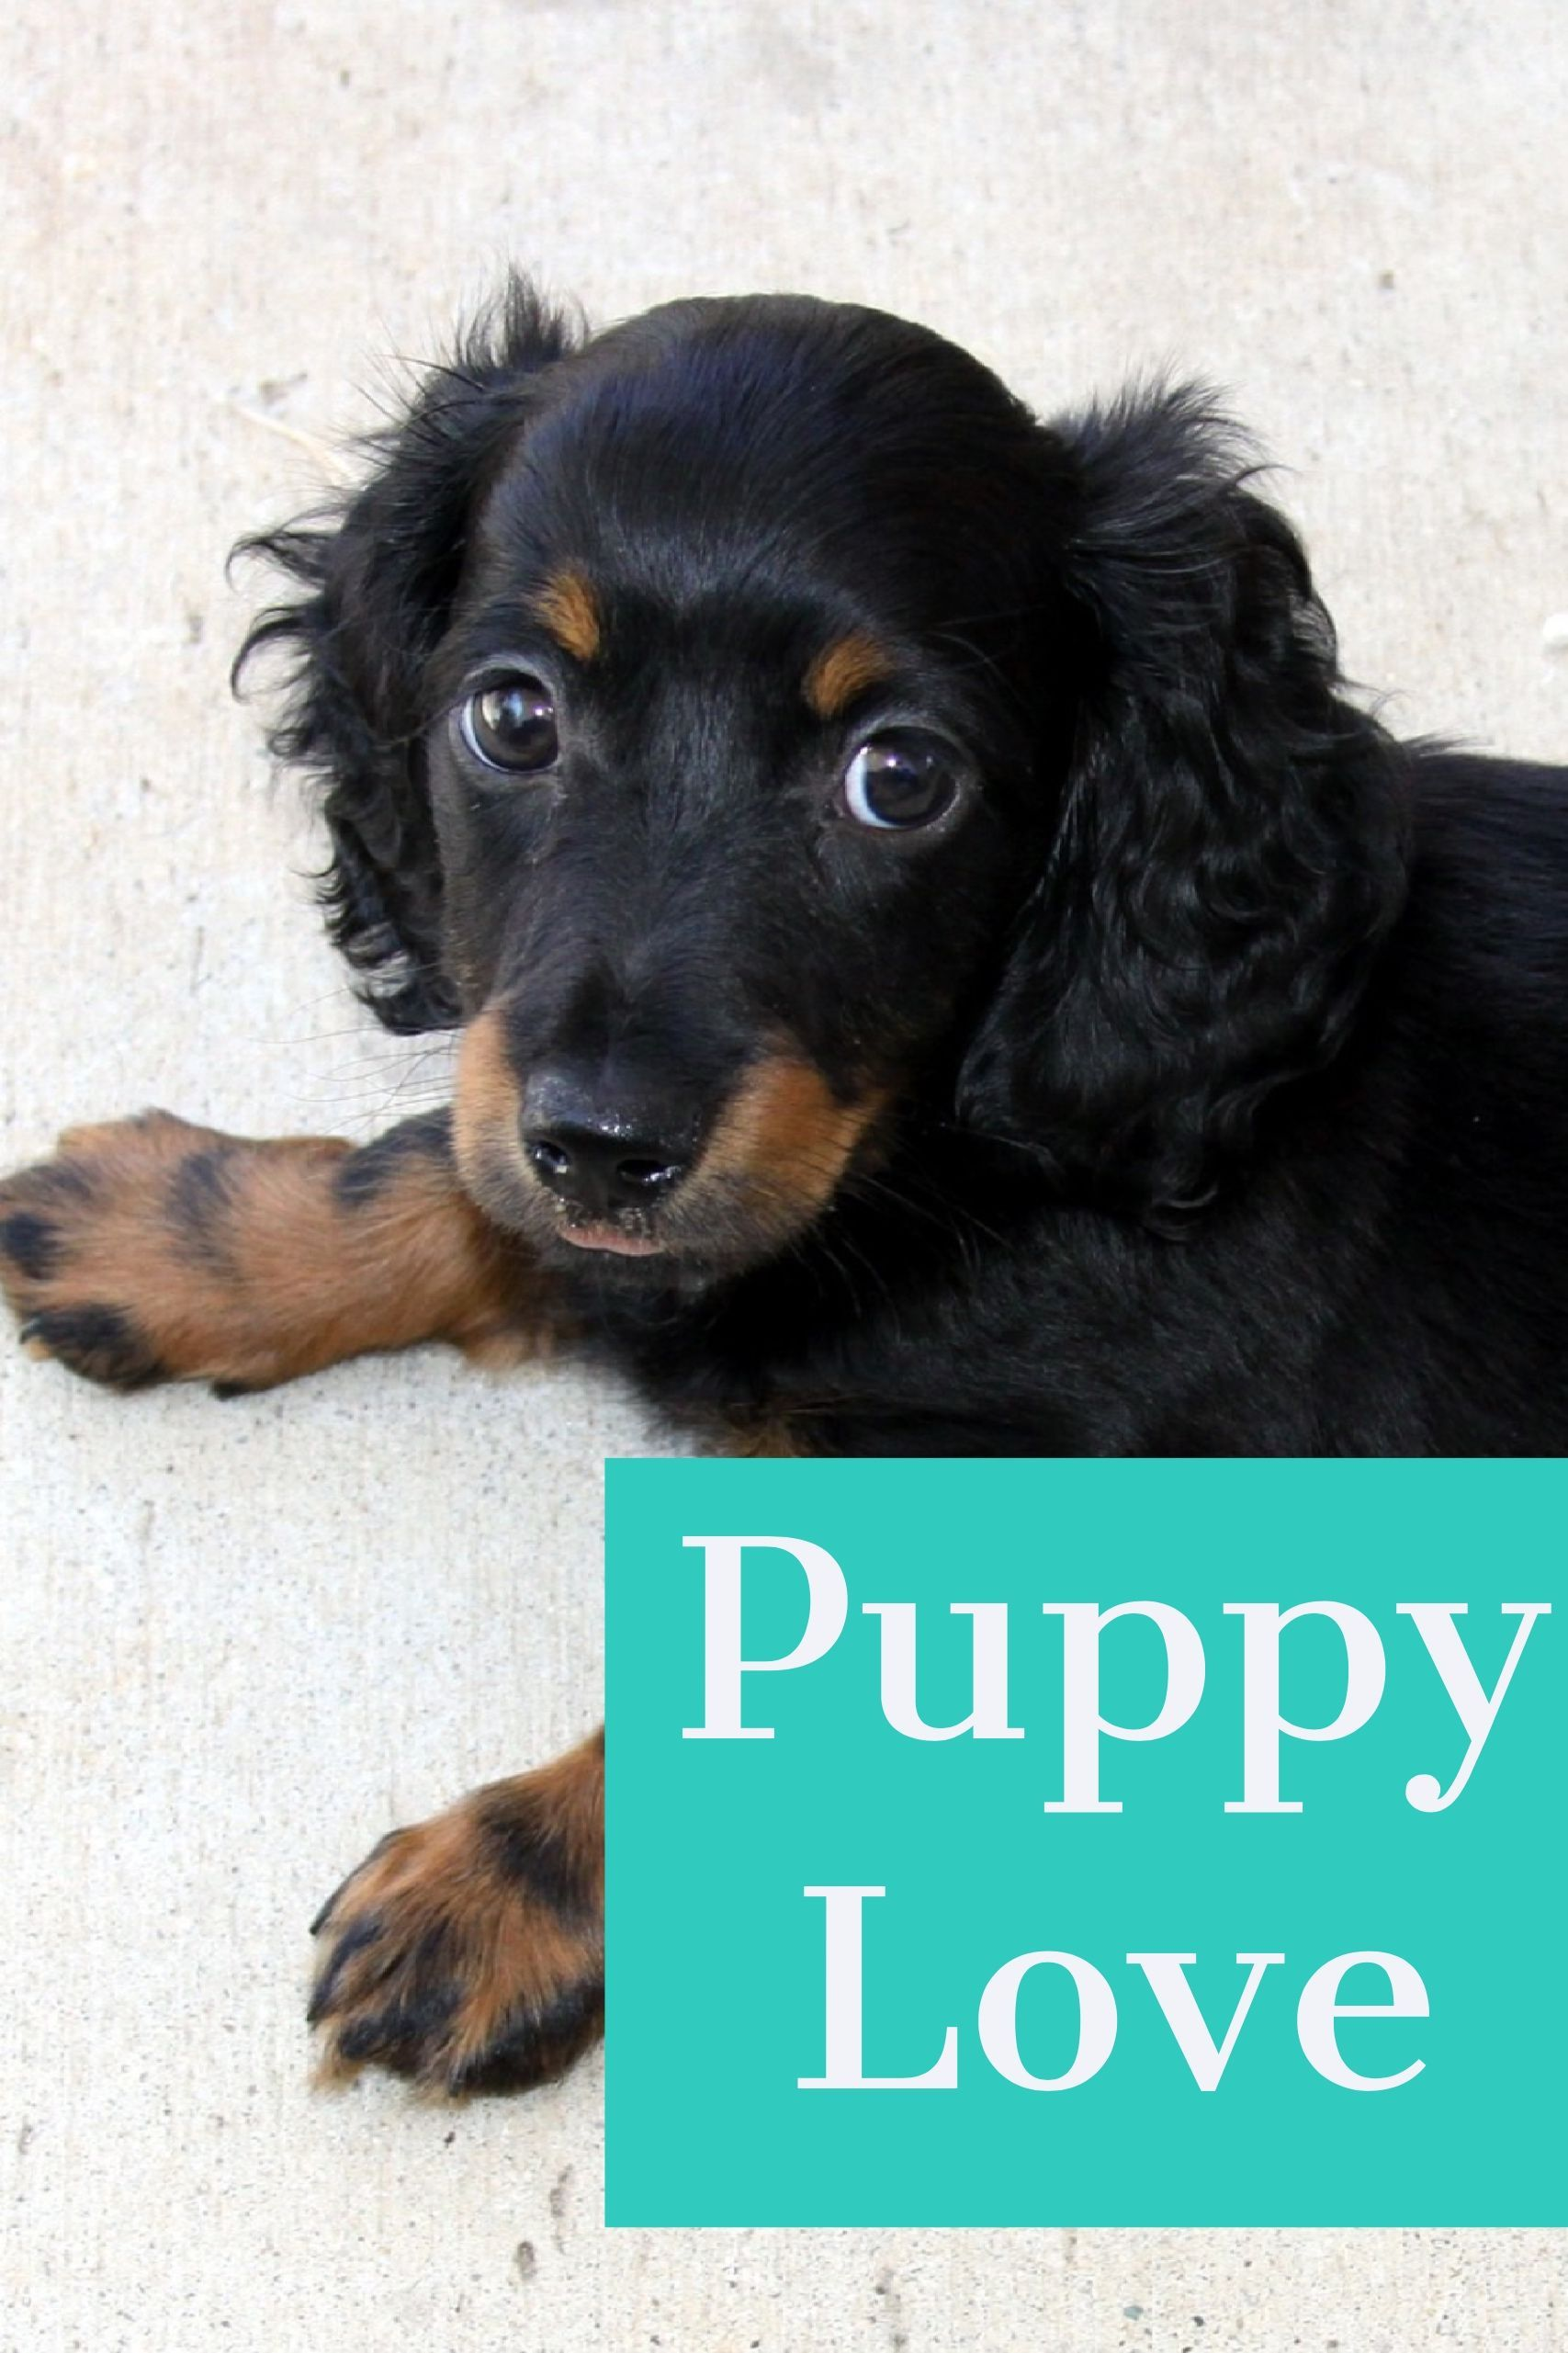 Have you had your puppy lick yet today? (scheduled via